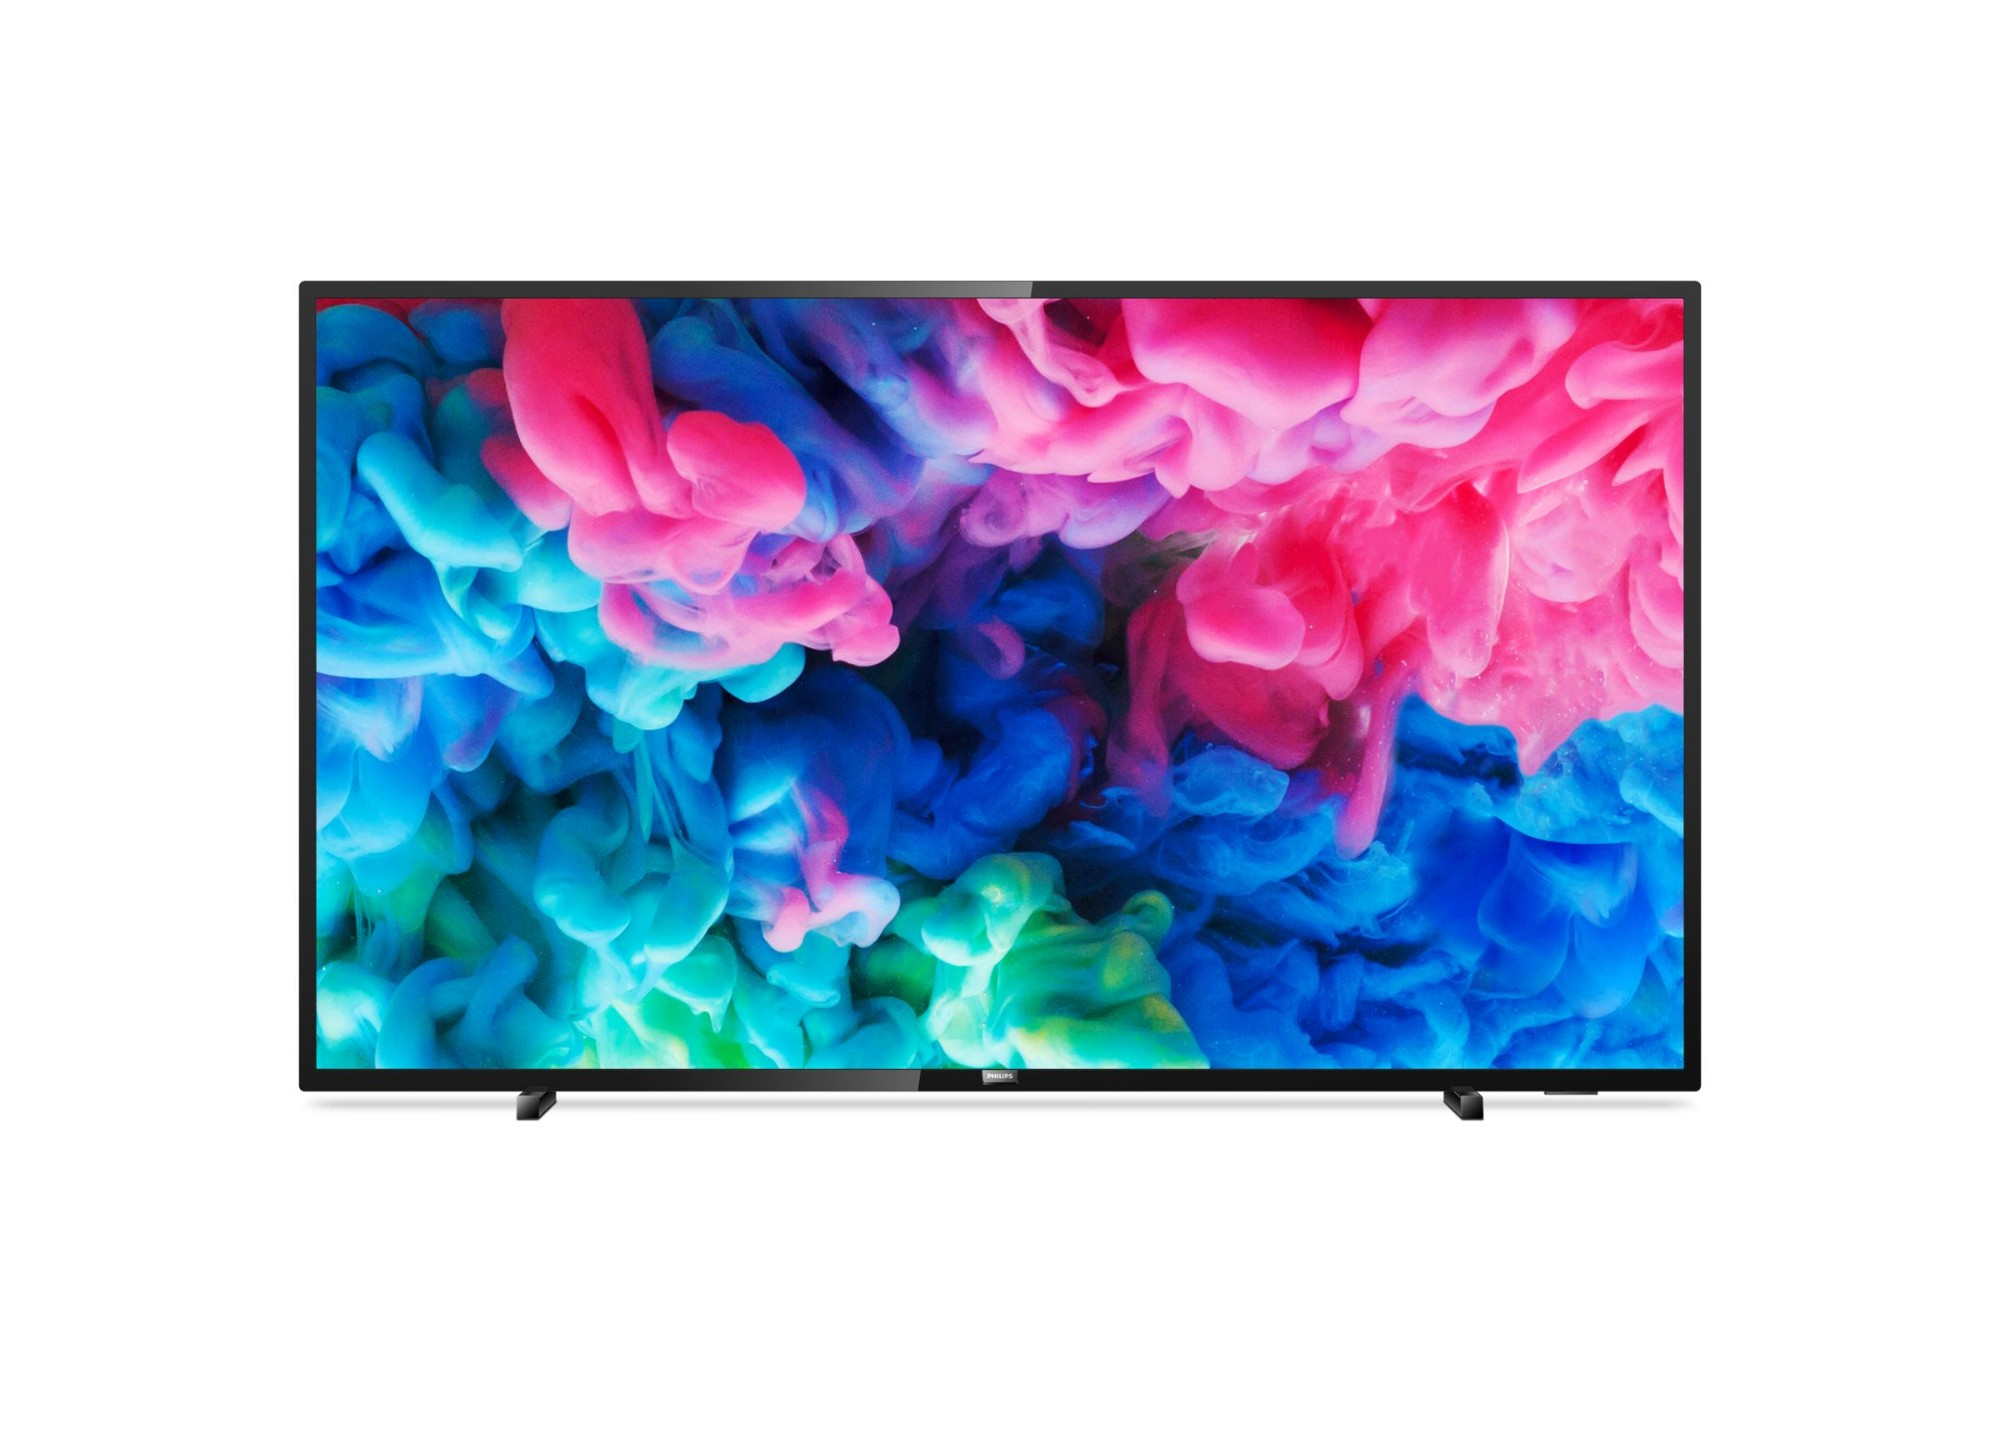 "Philips 6500 series 50PUS6503/12 Refurb Grade A+/No Stand LED TV 127 cm (50"") 4K Ultra HD Smart TV Wi-Fi Black"